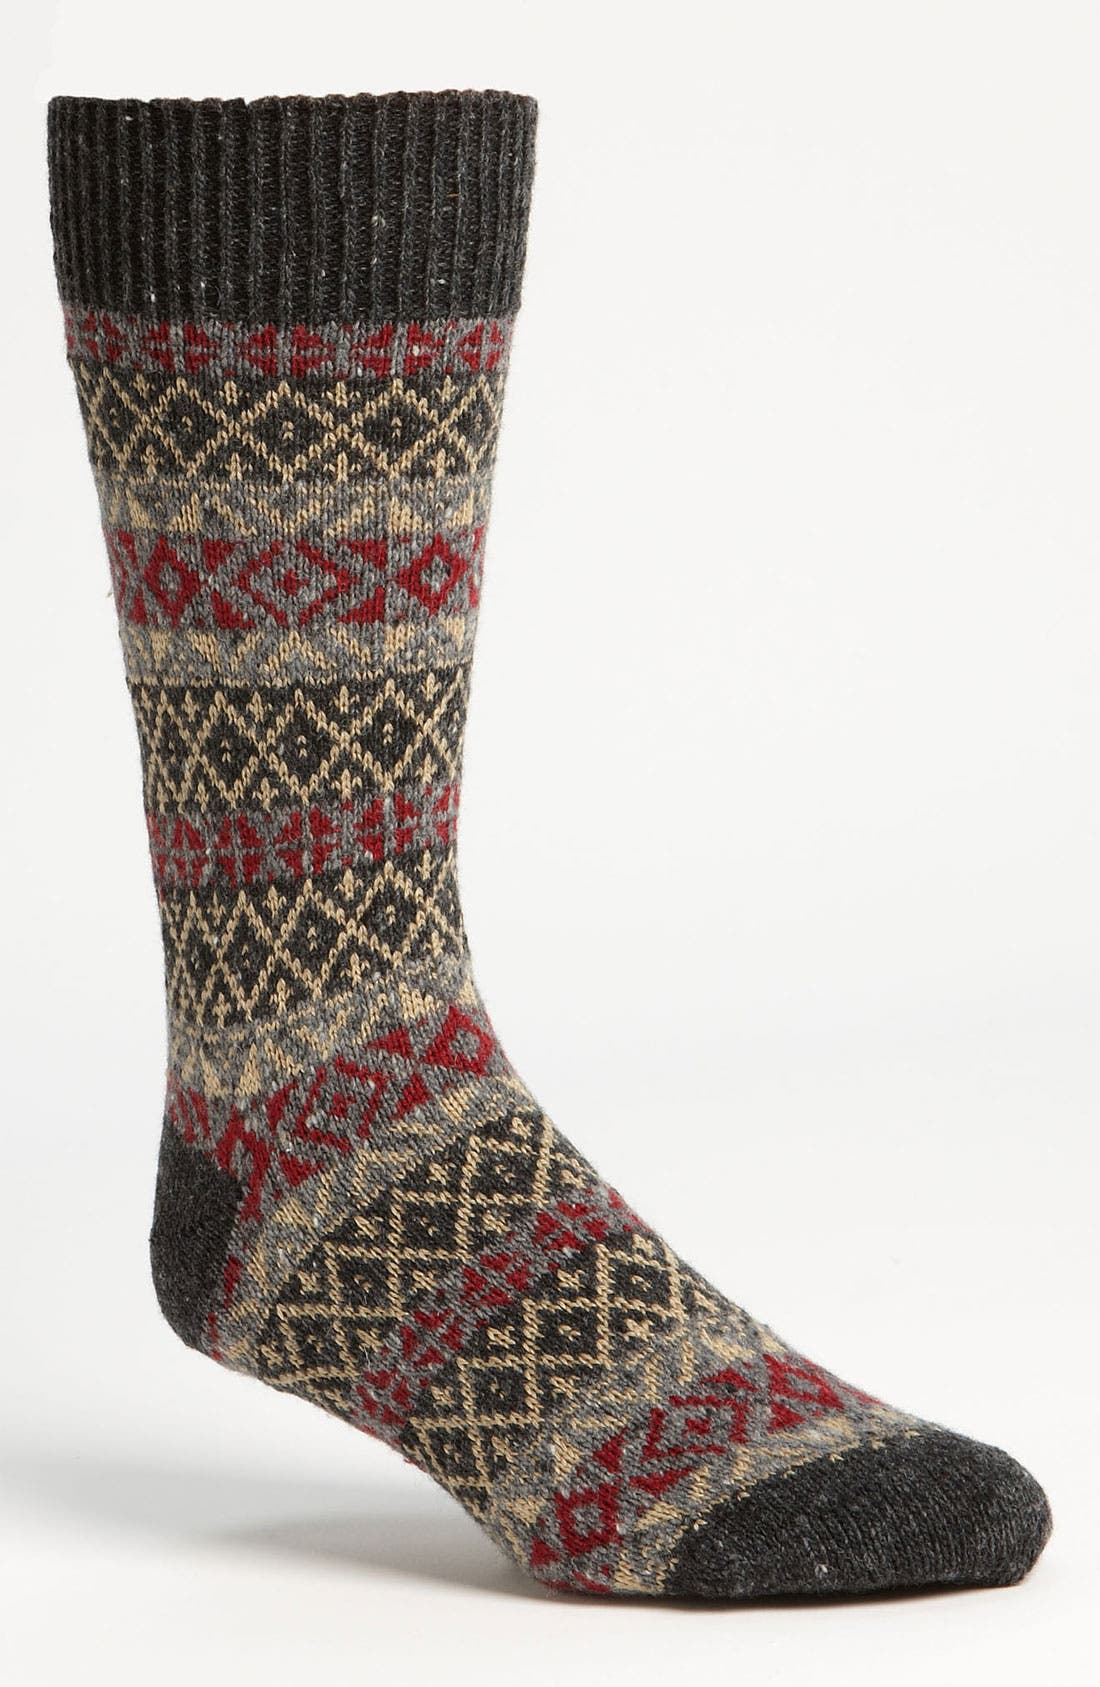 Alternate Image 1 Selected - Scott-Nichol 'The Rutland' Socks